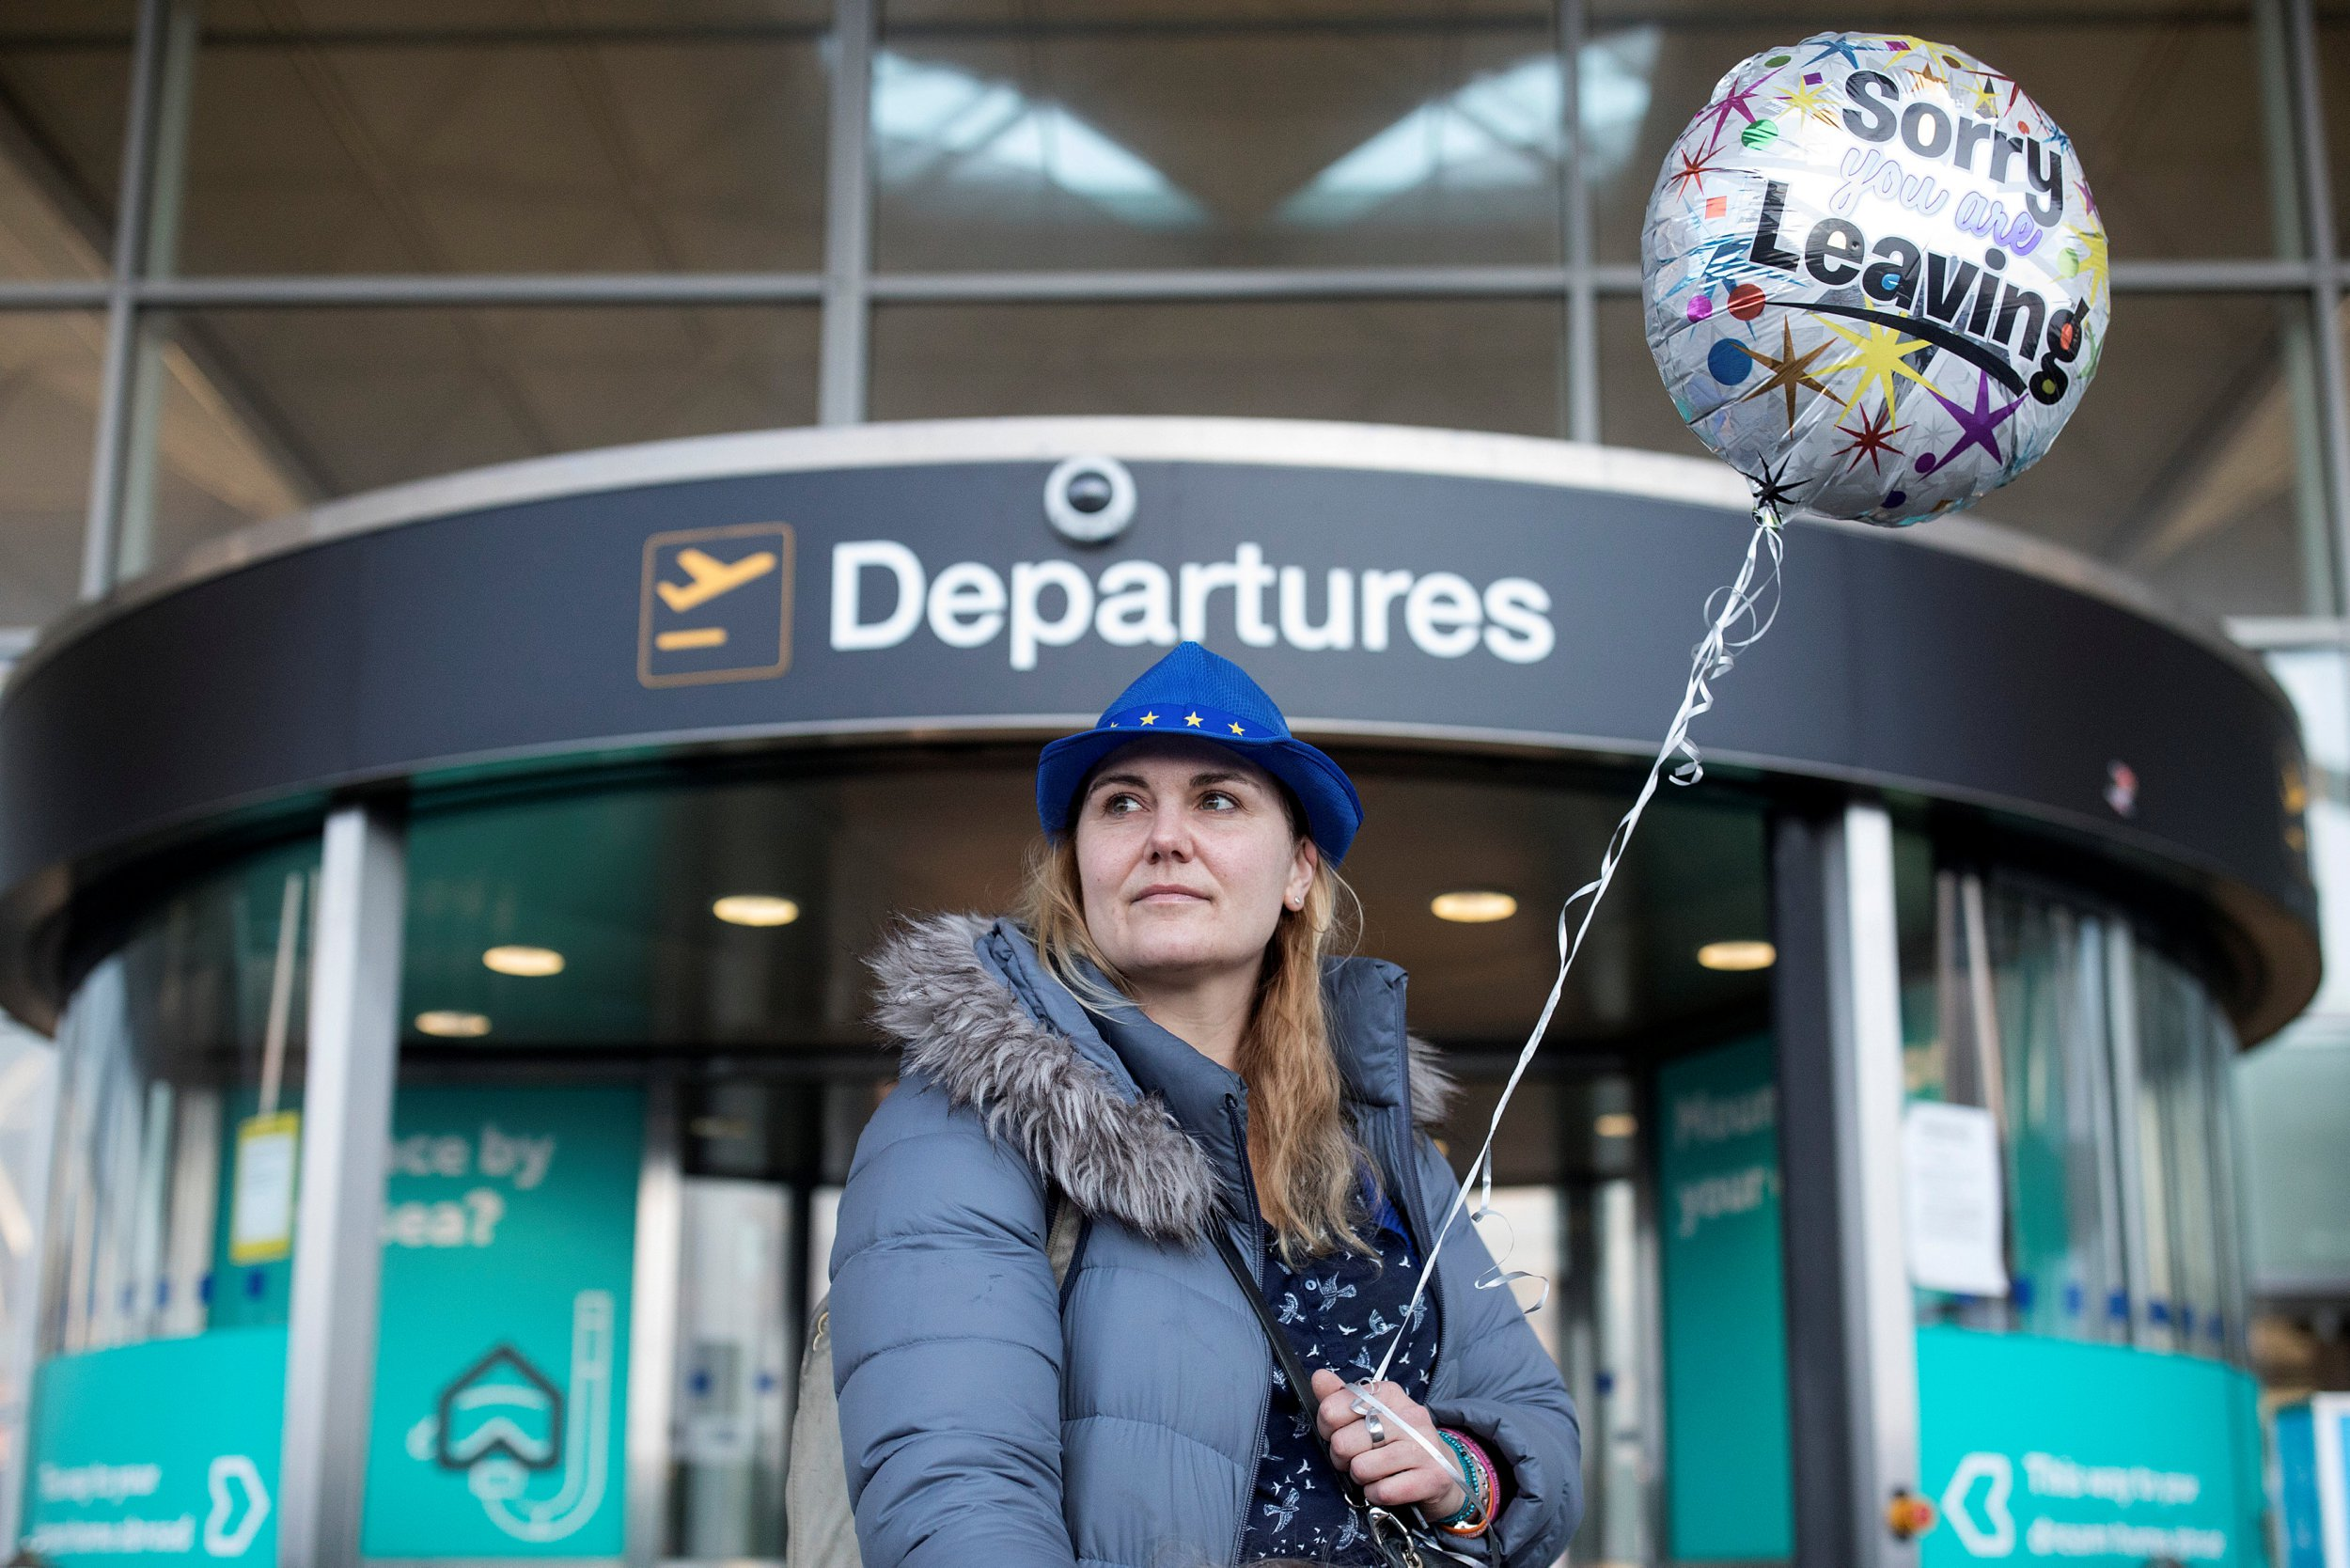 Sonja Morgenstern poses for a photograph outside the departure entrance at Stansted Airport, London, Britain February 21, 2019. REUTERS/Simon Dawson